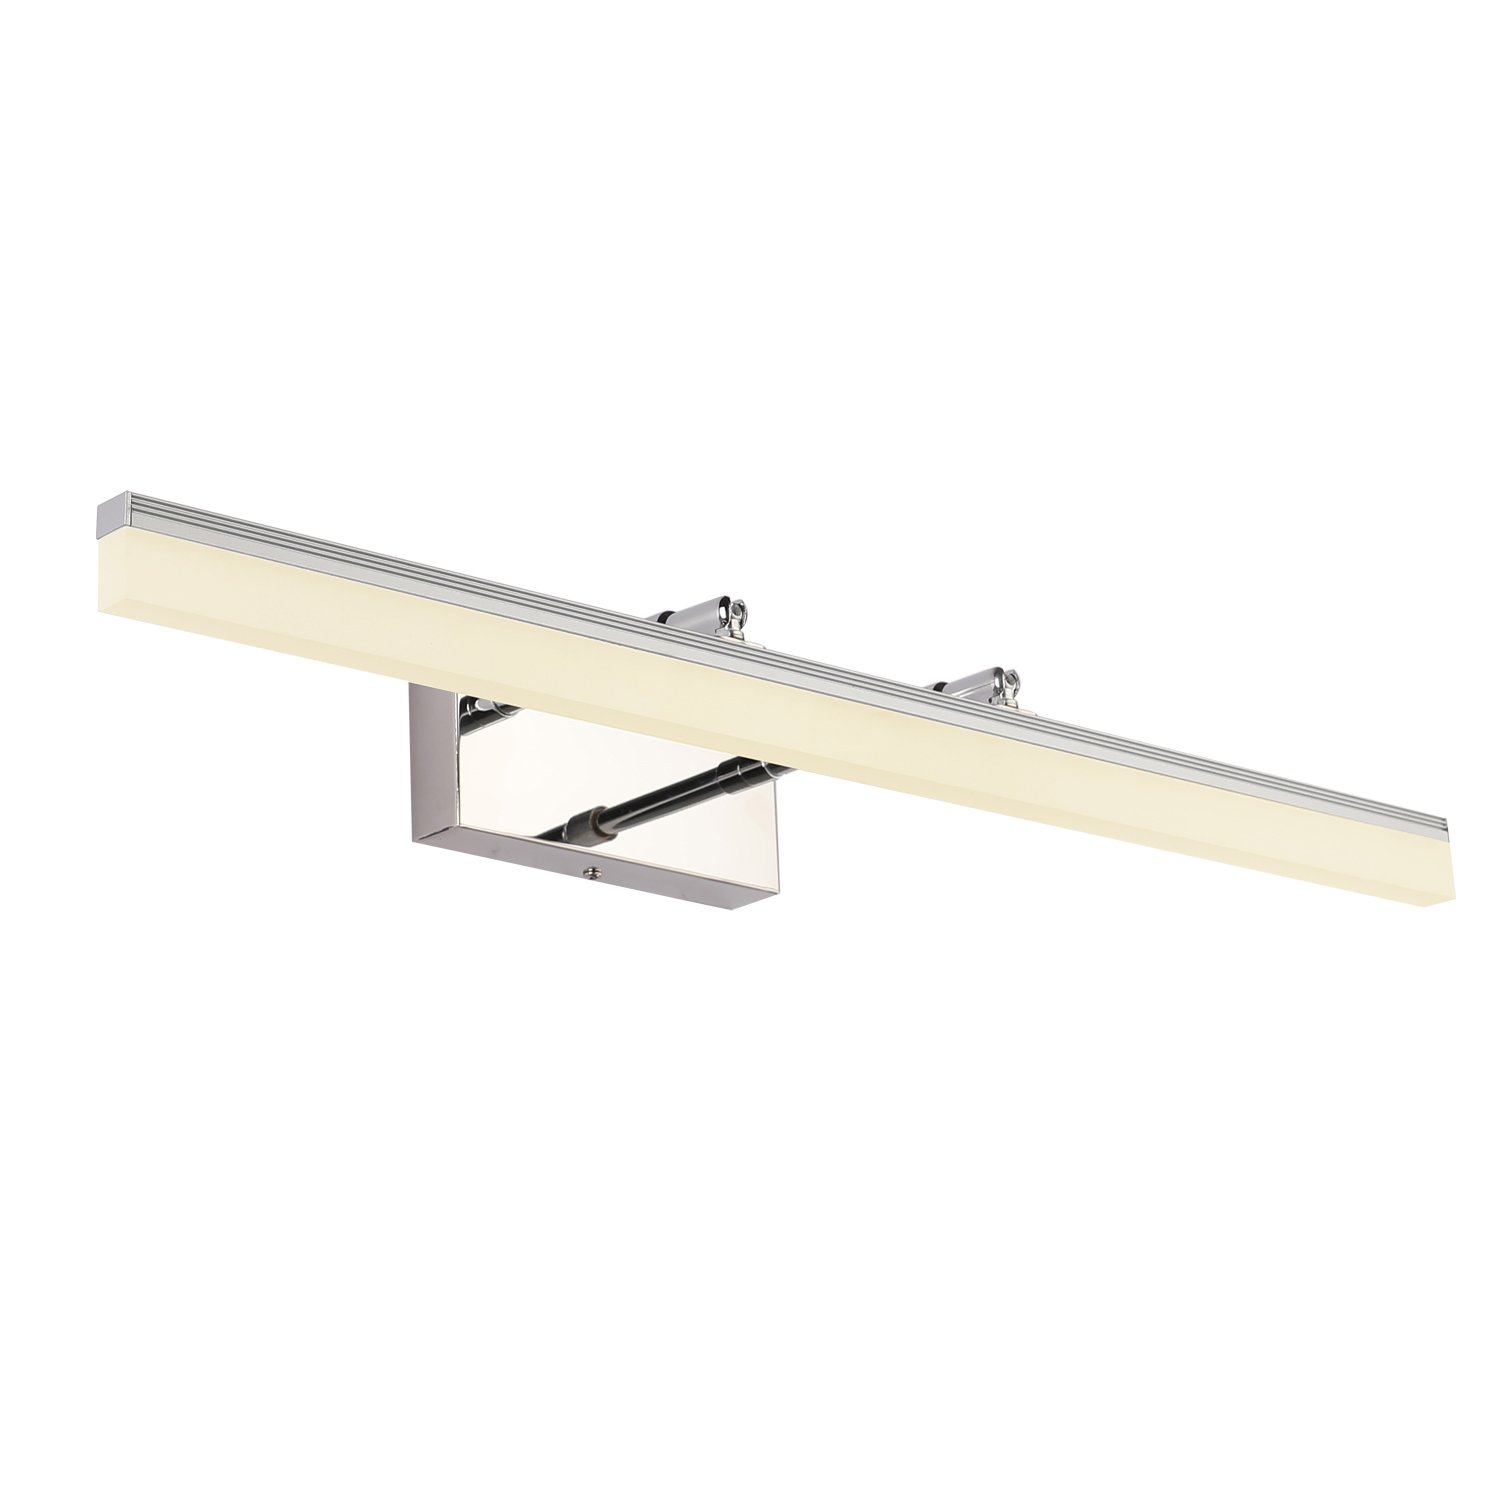 SAILUN Vanity Light Fixture 20W 36 inch Vanity Mirror Light Arm Length Adjustable Stainless Steel Acrylic Wall Light for Bathroom Dressing Room IP44 Waterproof 1650LM Warm White Light